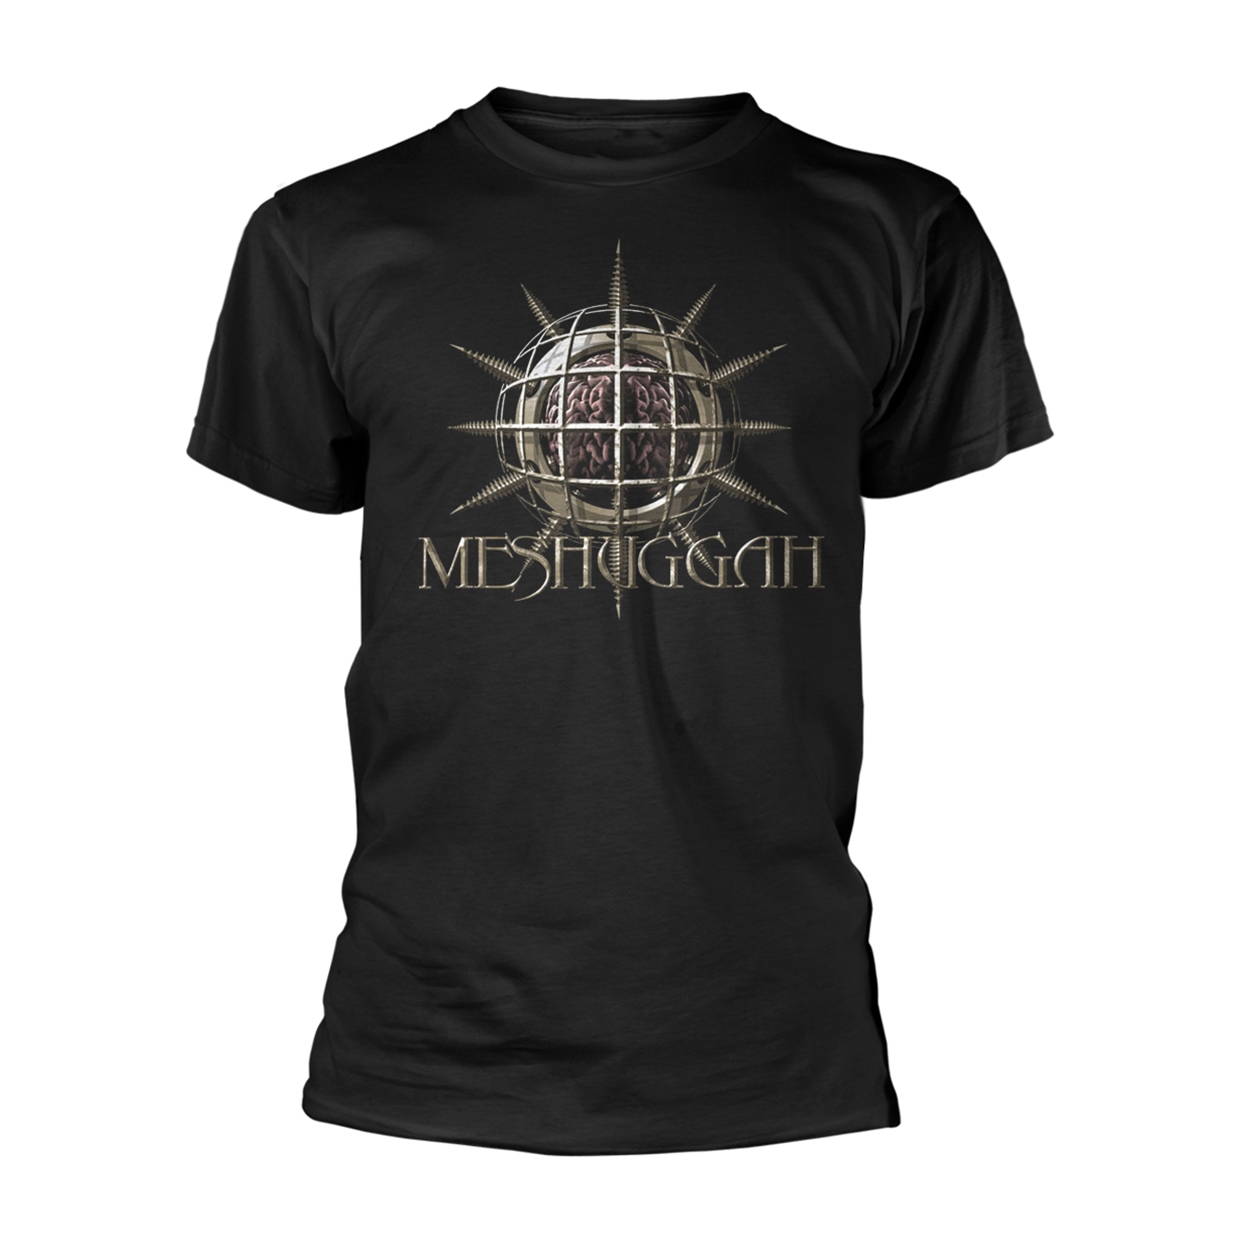 25 YEARS Size XXL Black Mens Licensed Merch New Official T Shirt MESHUGGAH